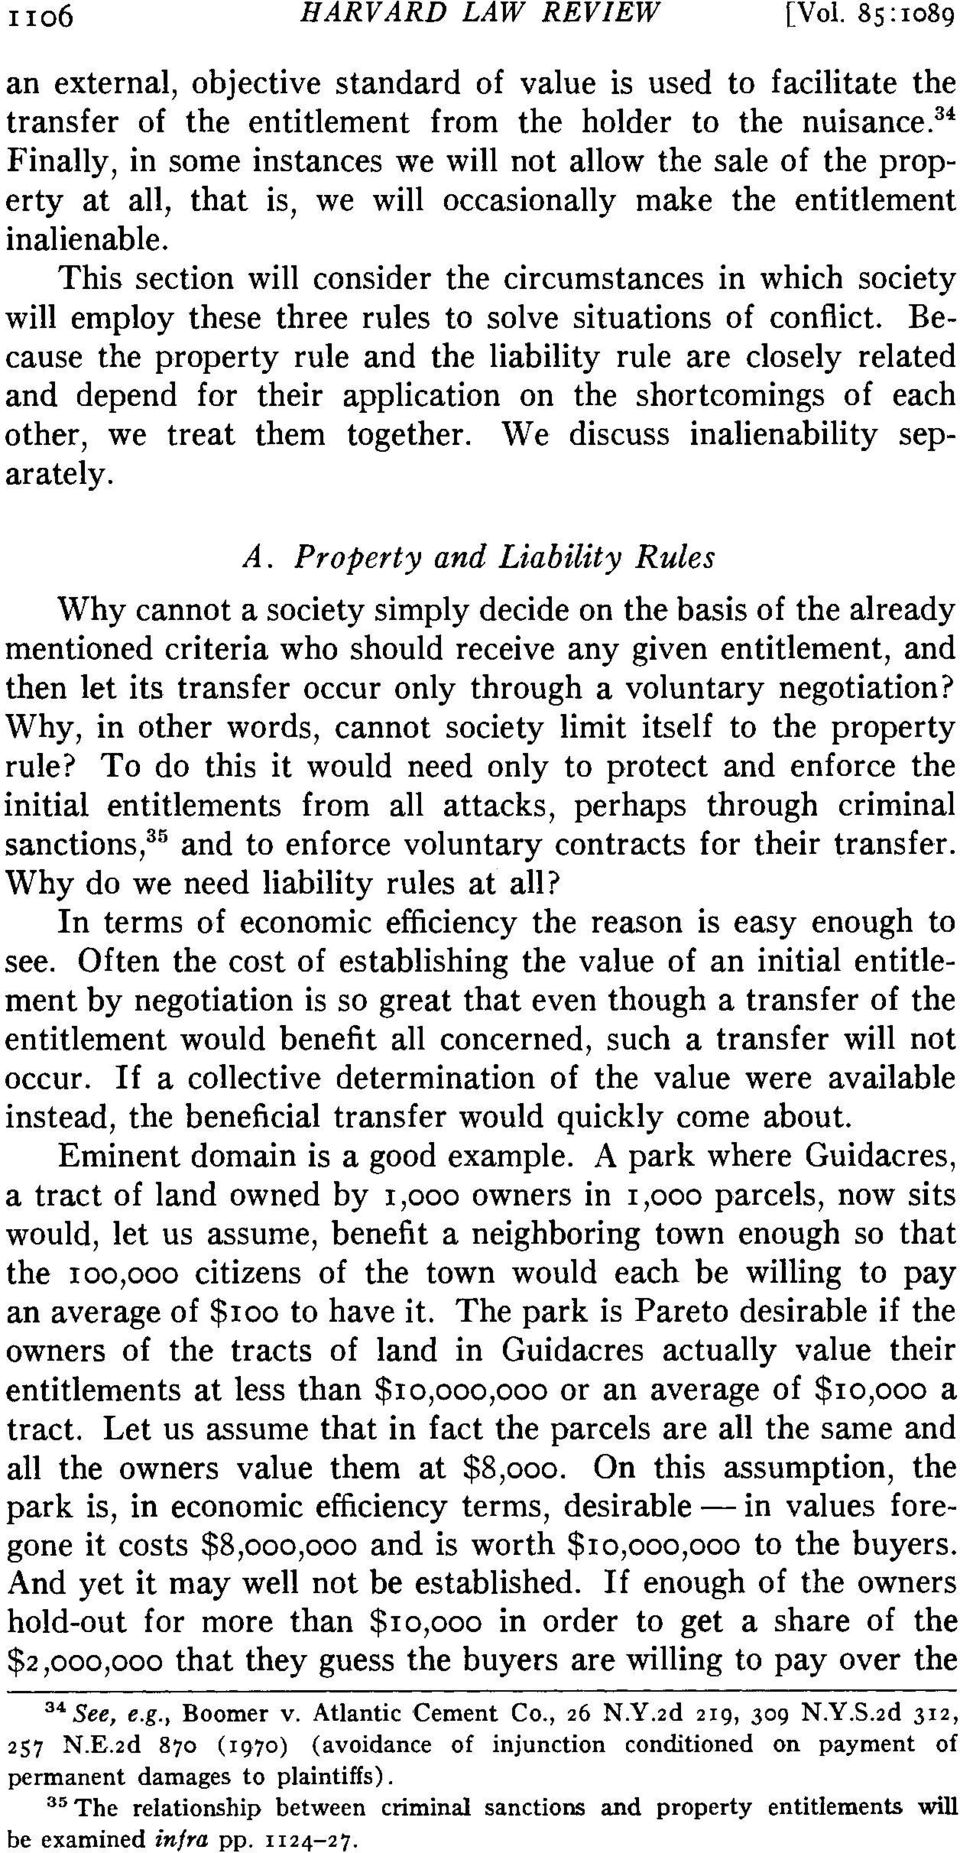 This section will consider the circumstances in which society will employ these three rules to solve situations of conflict.